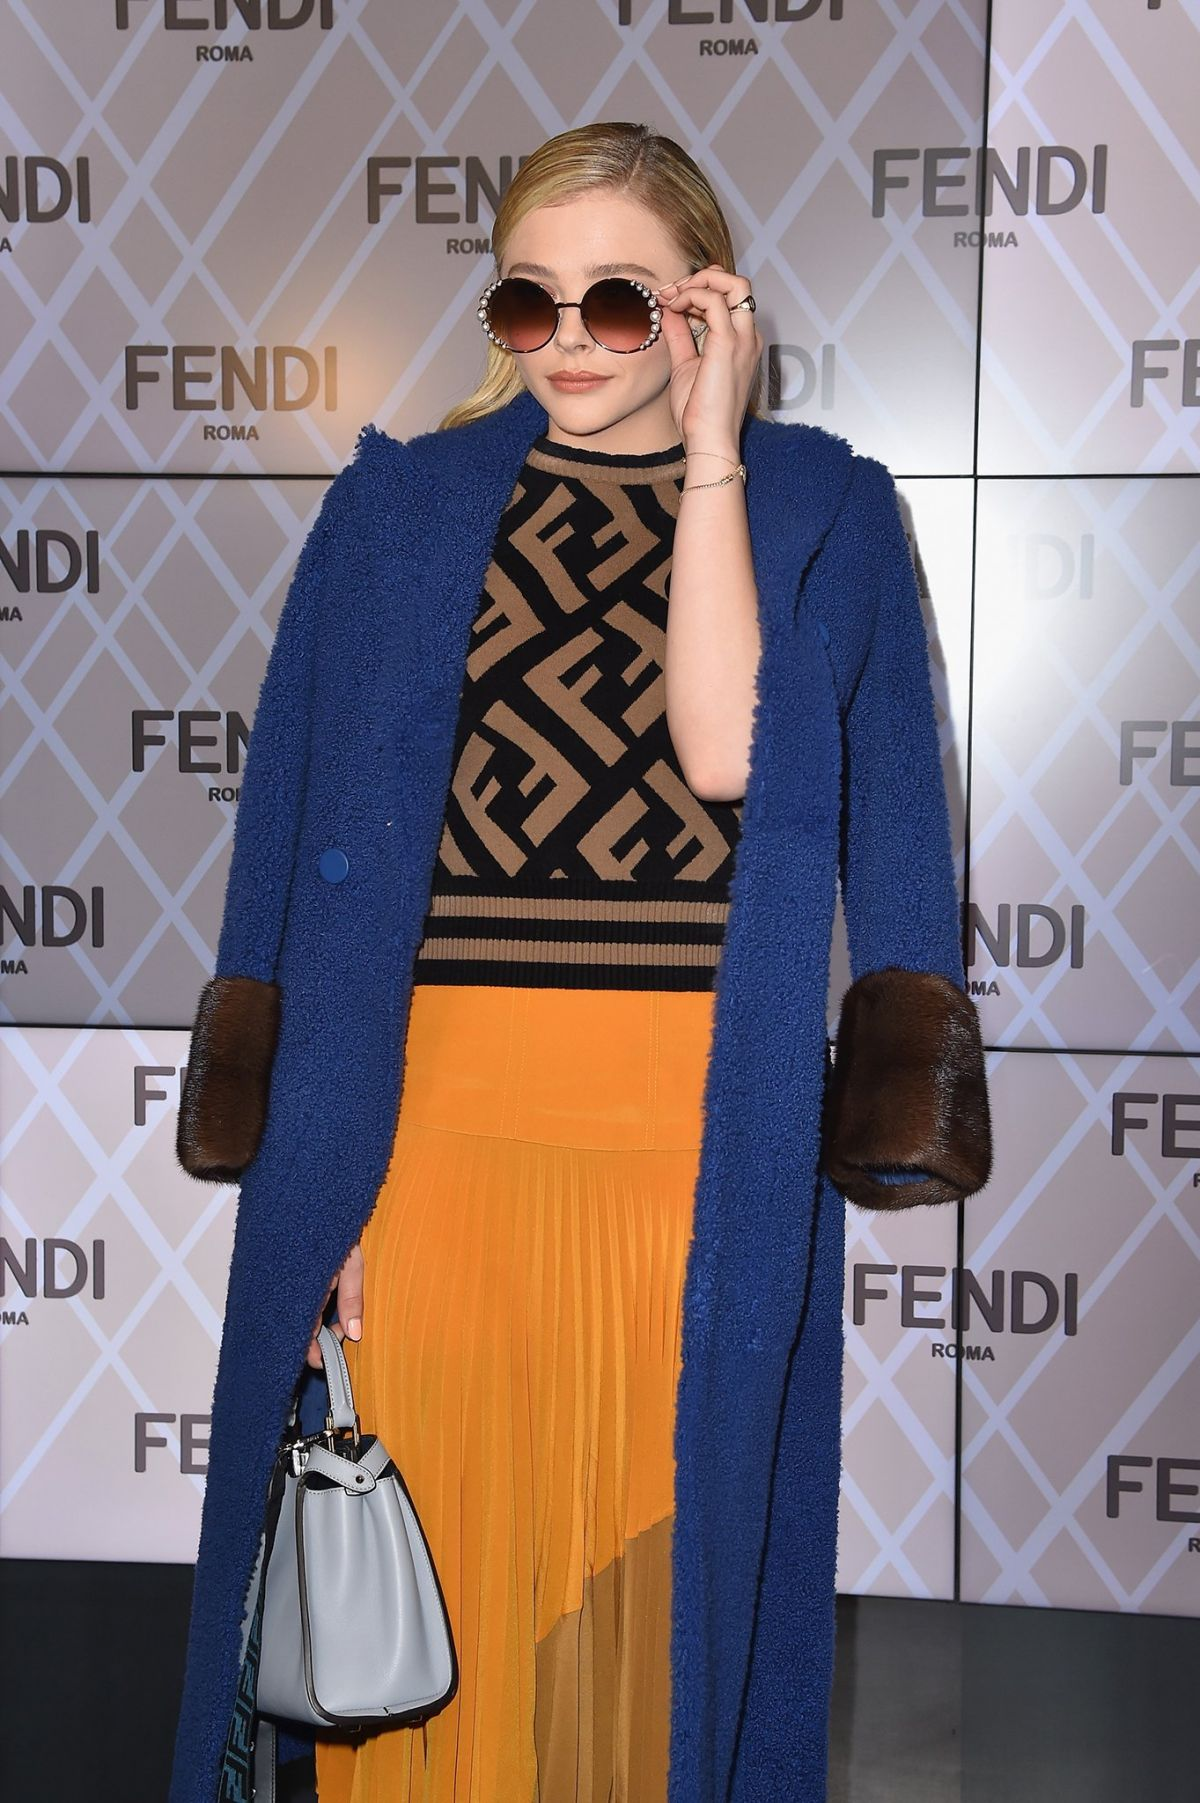 c5f27f75ce Chloe Grace Moretz At the Fendi Winter/Fall 2018-19 Fashion Show in Milan